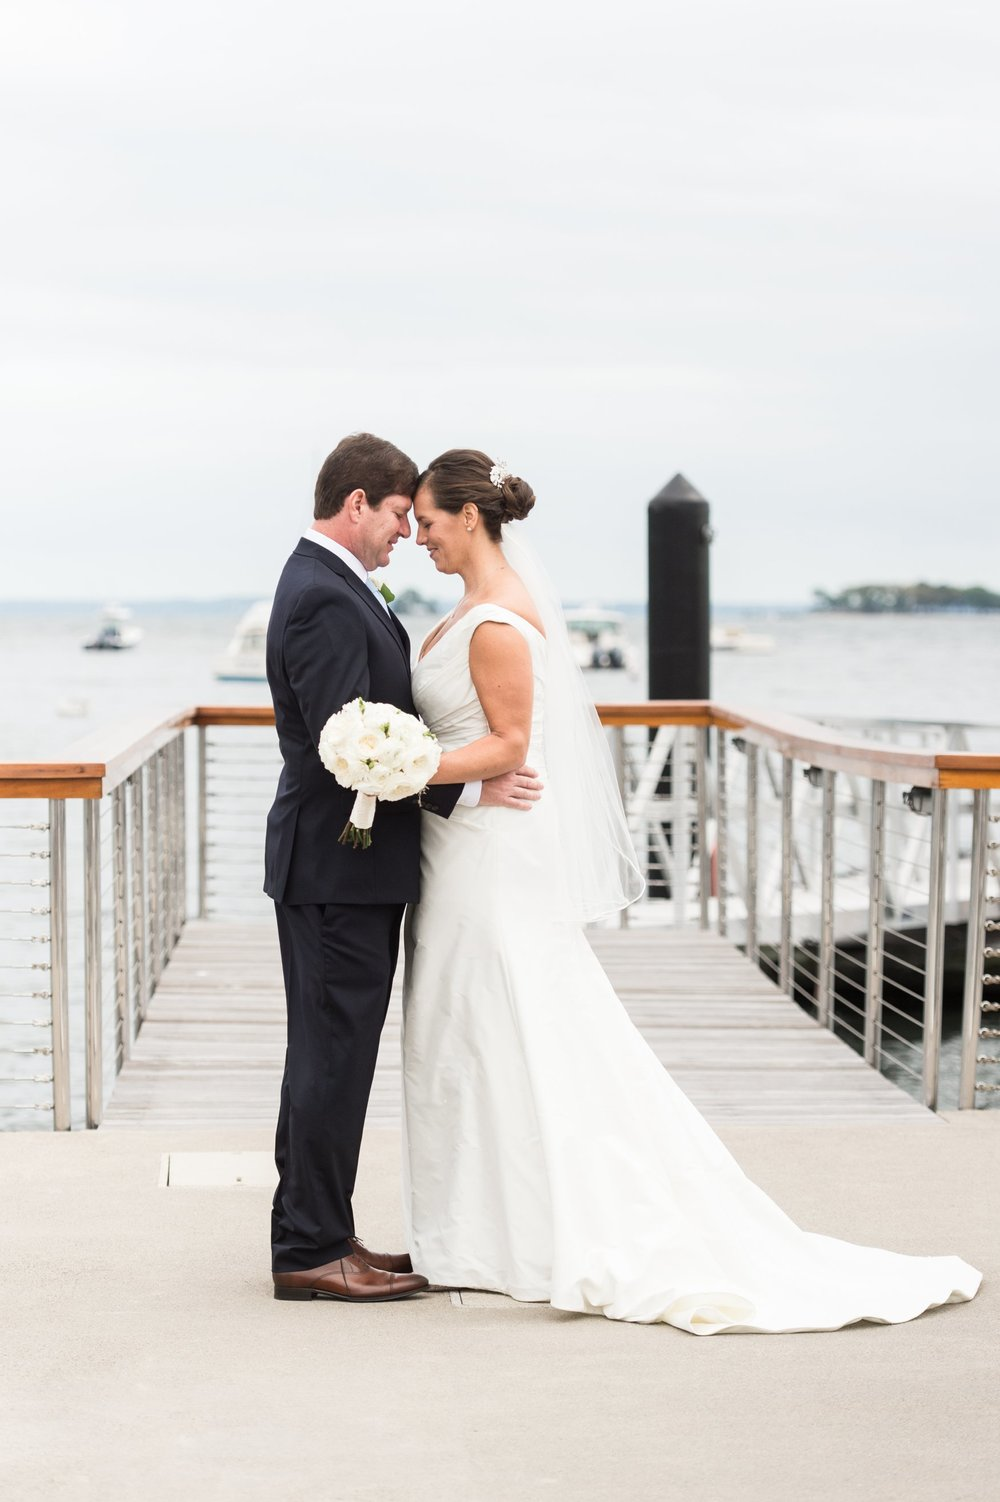 Bride and Groom First Look on the docks for an elegant nautical inspired navy and white Fall Wedding at Belle Haven Club in Greenwich CT